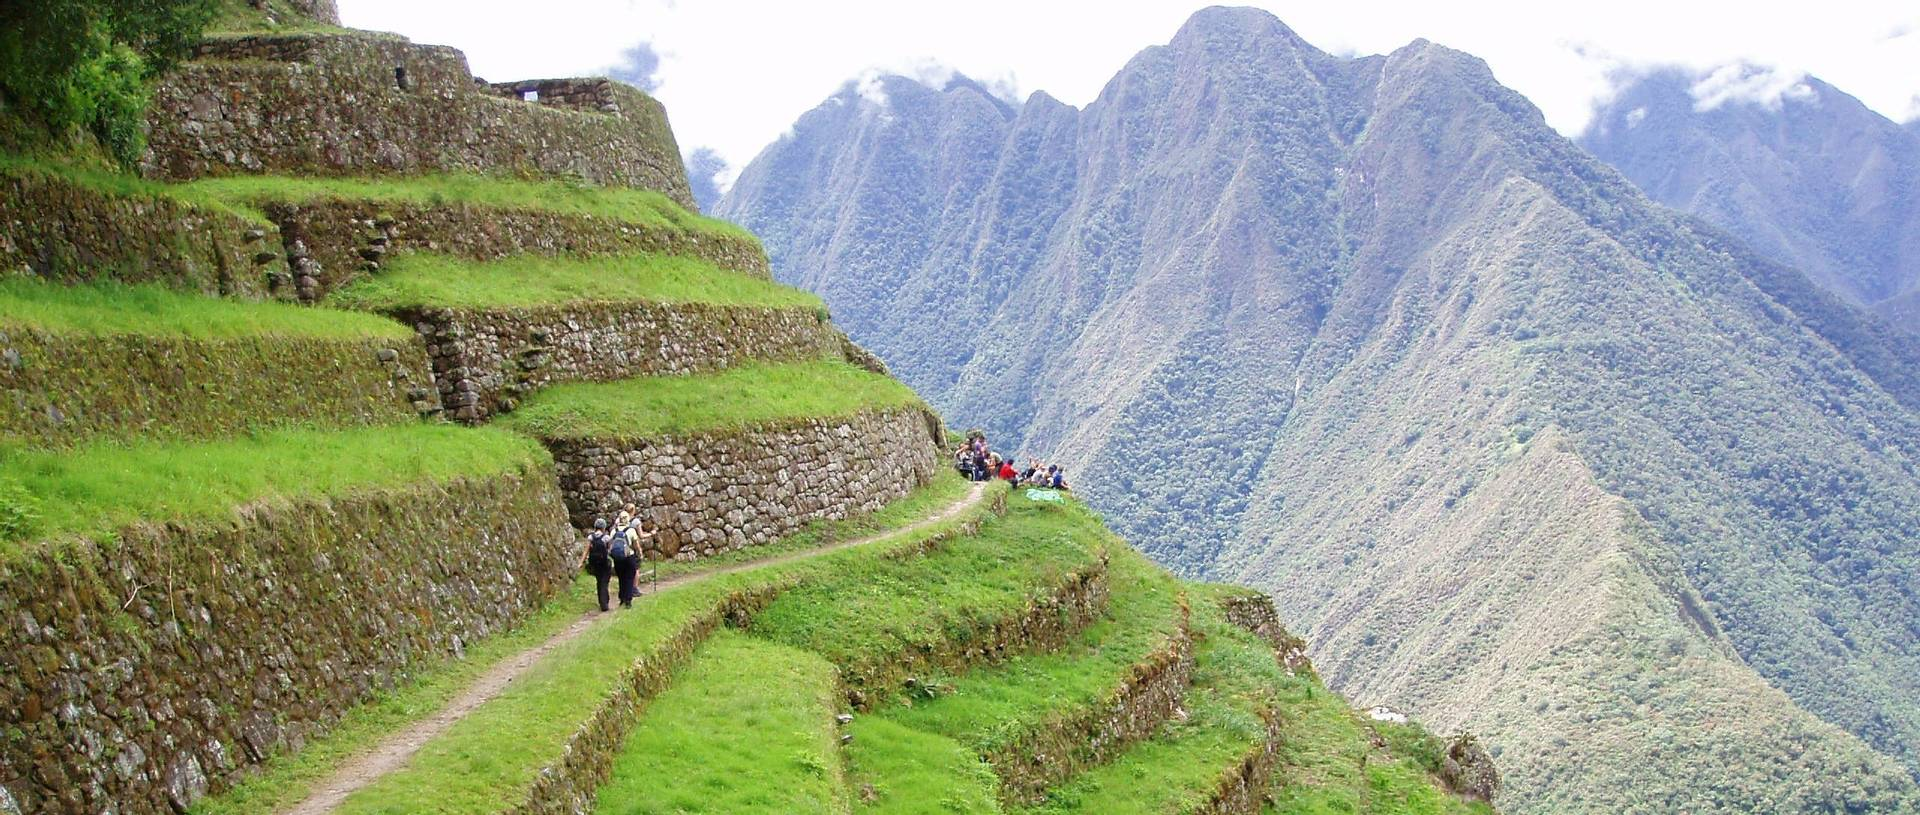 Hiking The Terraced Inca Trail